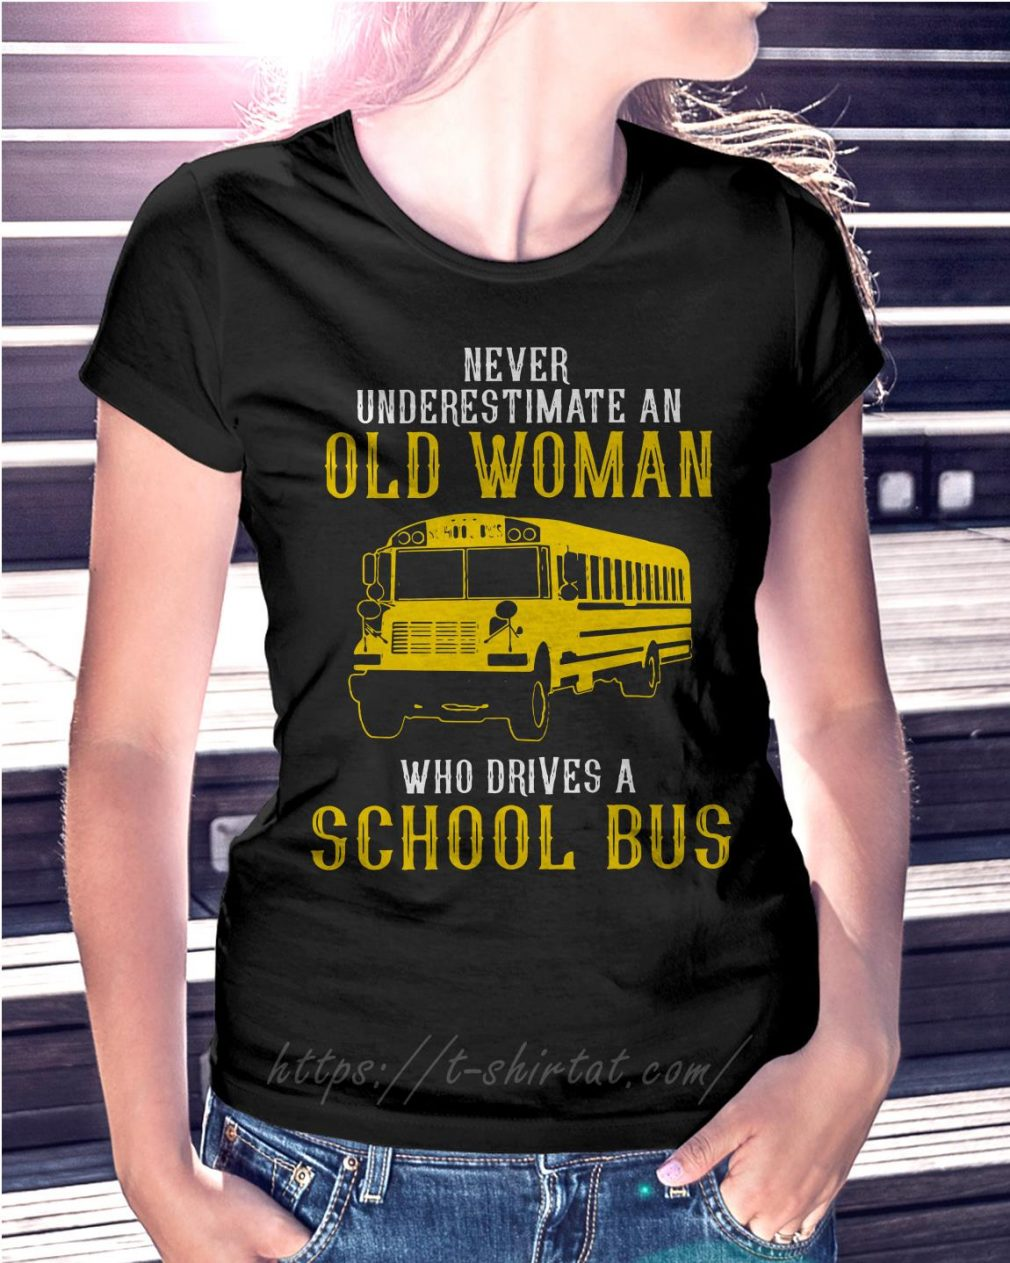 Bus never underestimate an old woman who drives a school bus